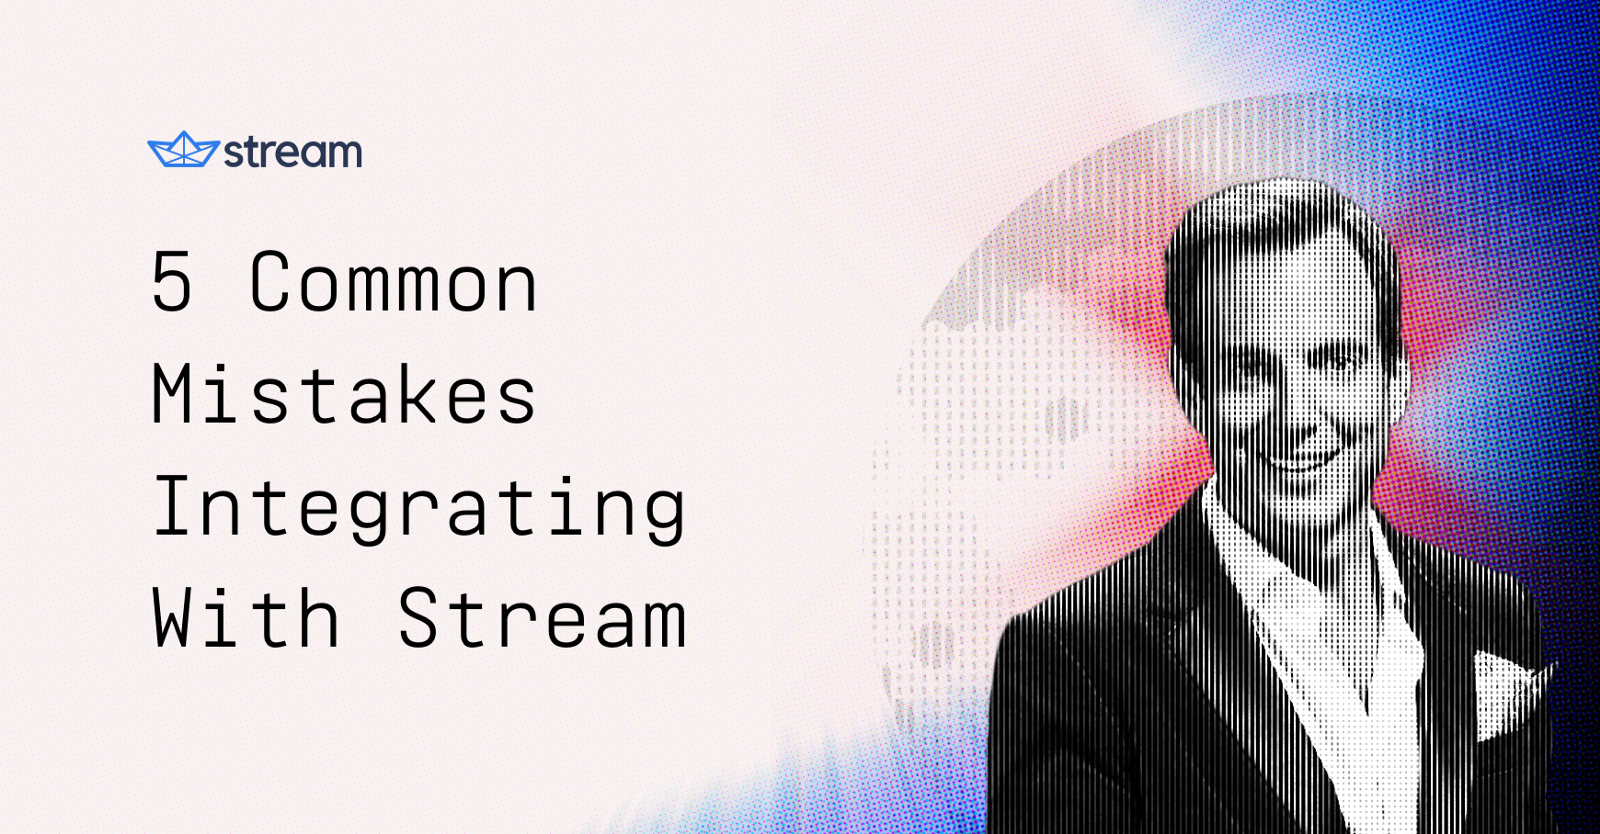 /5-common-mistakes-integrating-with-getstream-io-73553b2c8918 feature image